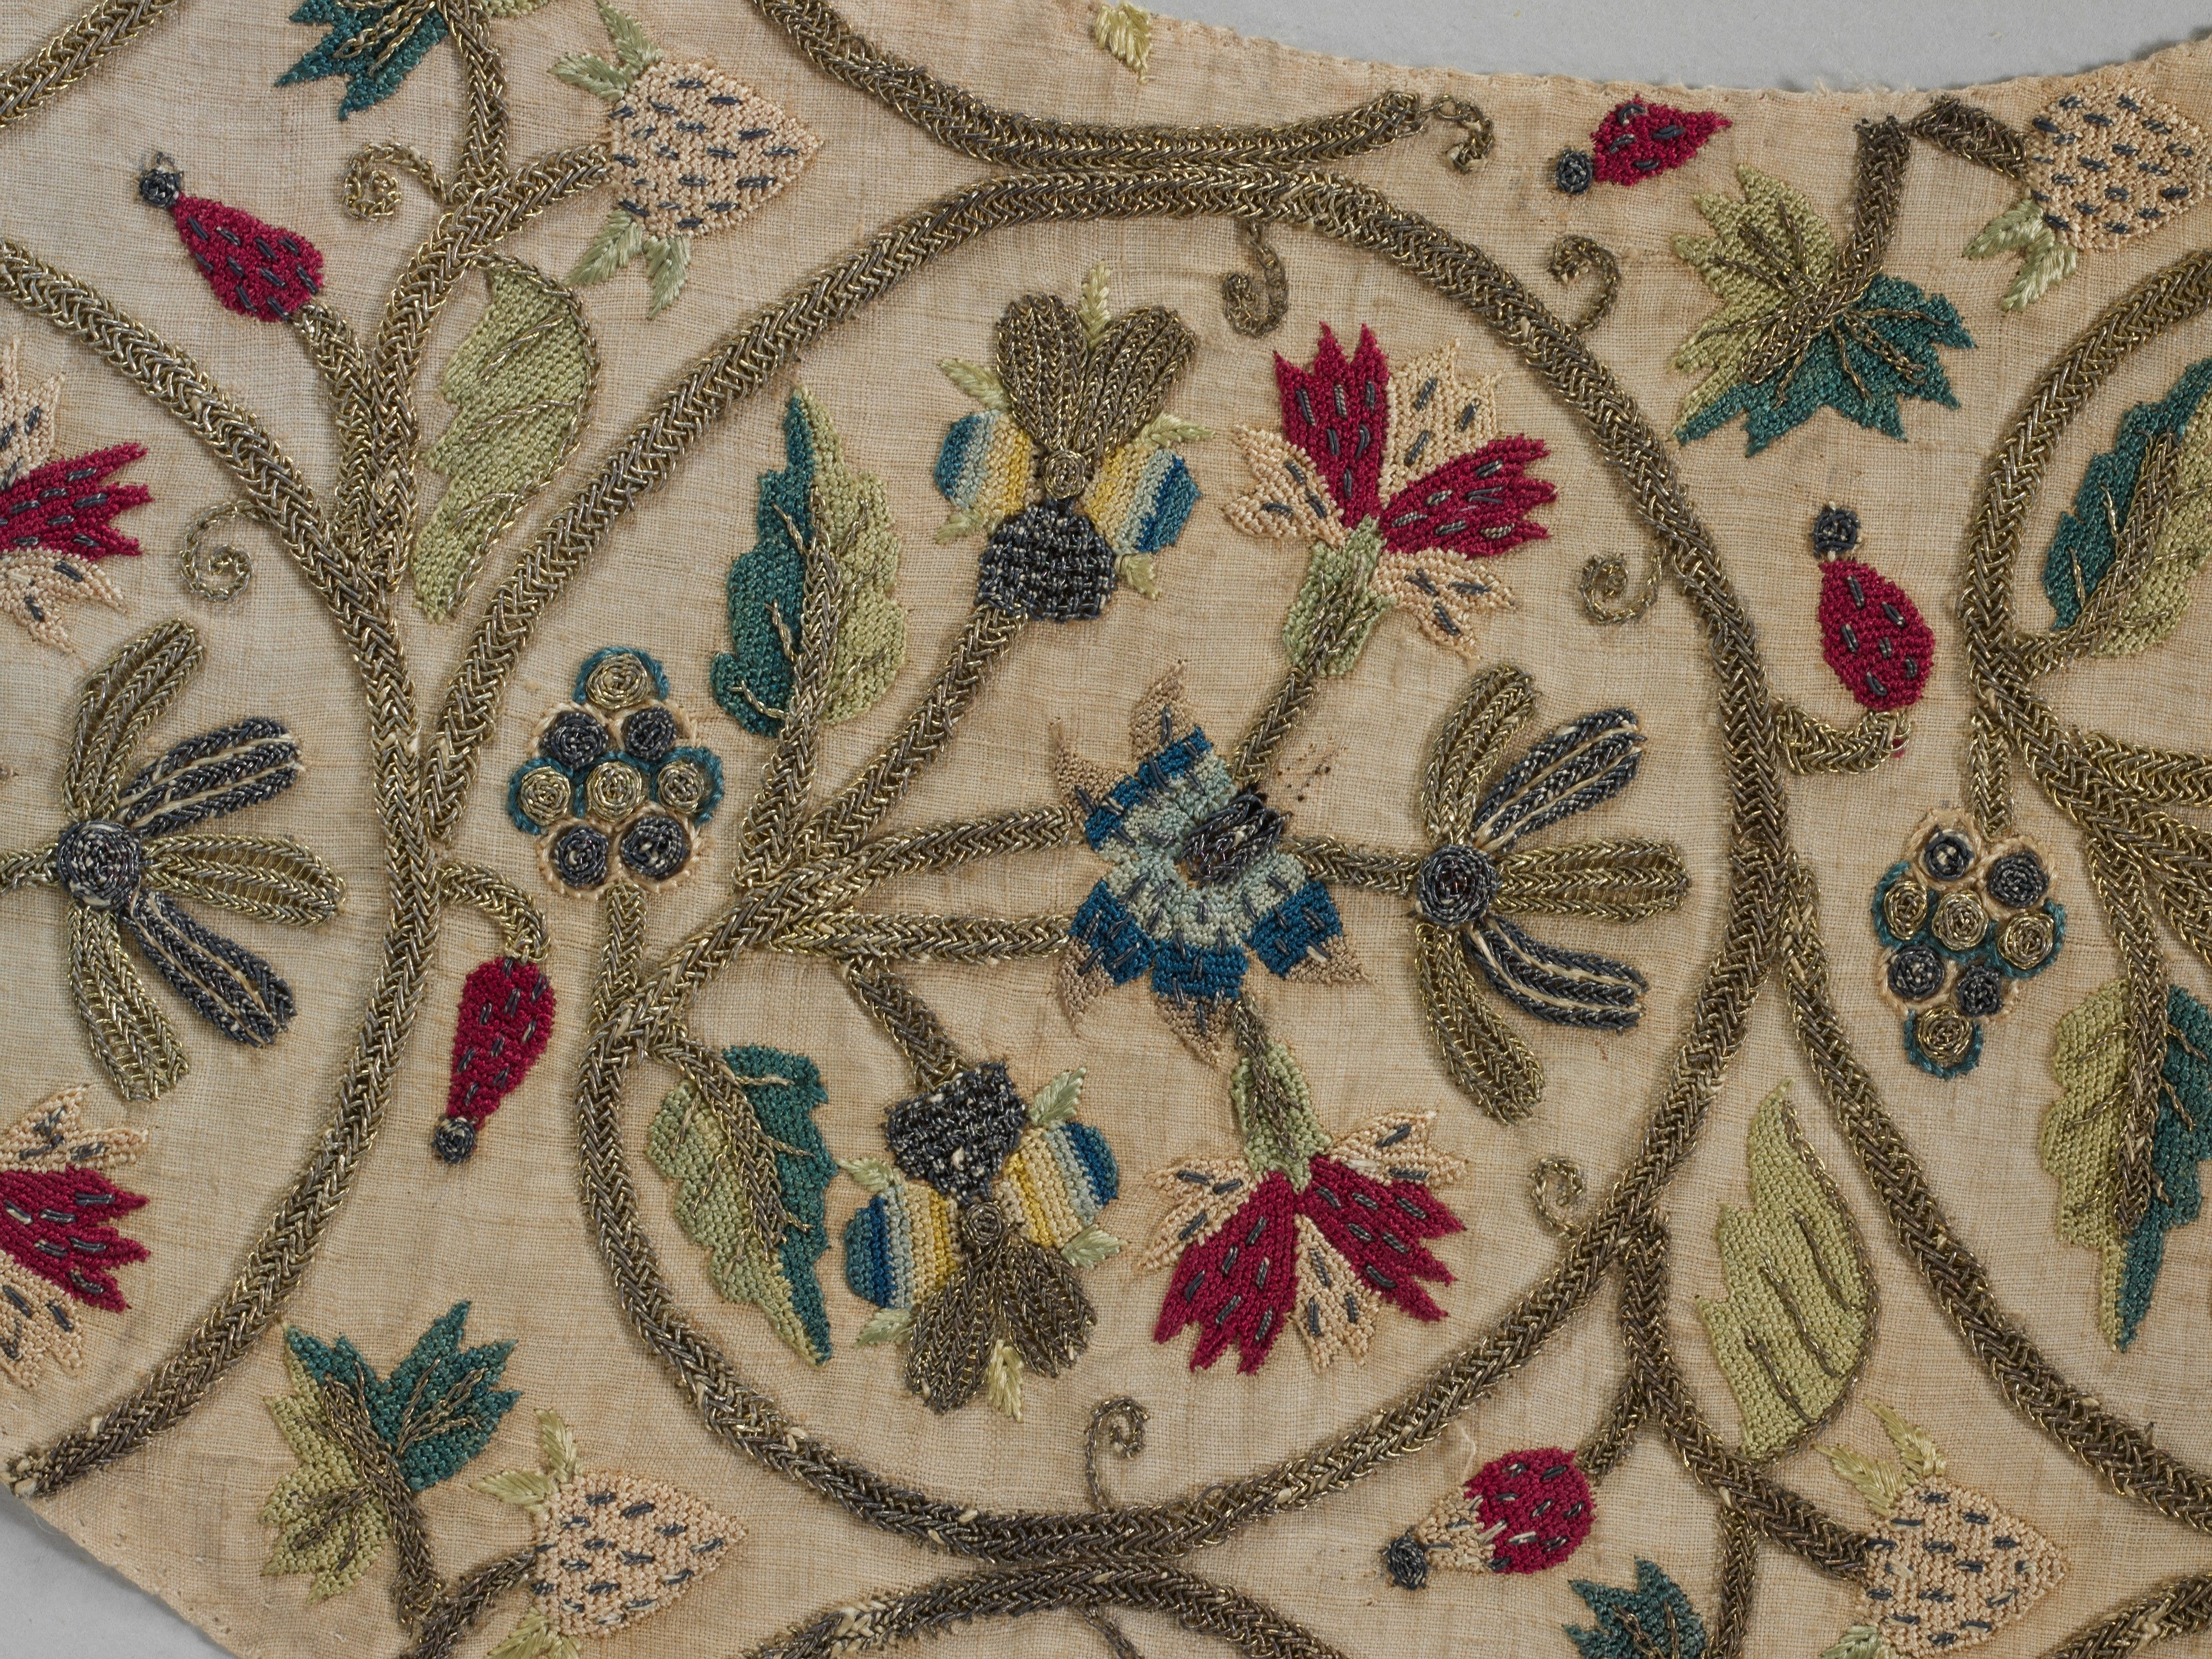 Embroidered sleeve pieces Date: late 16th or early 17th century Culture: British Medium: Silk and metal thread on linen